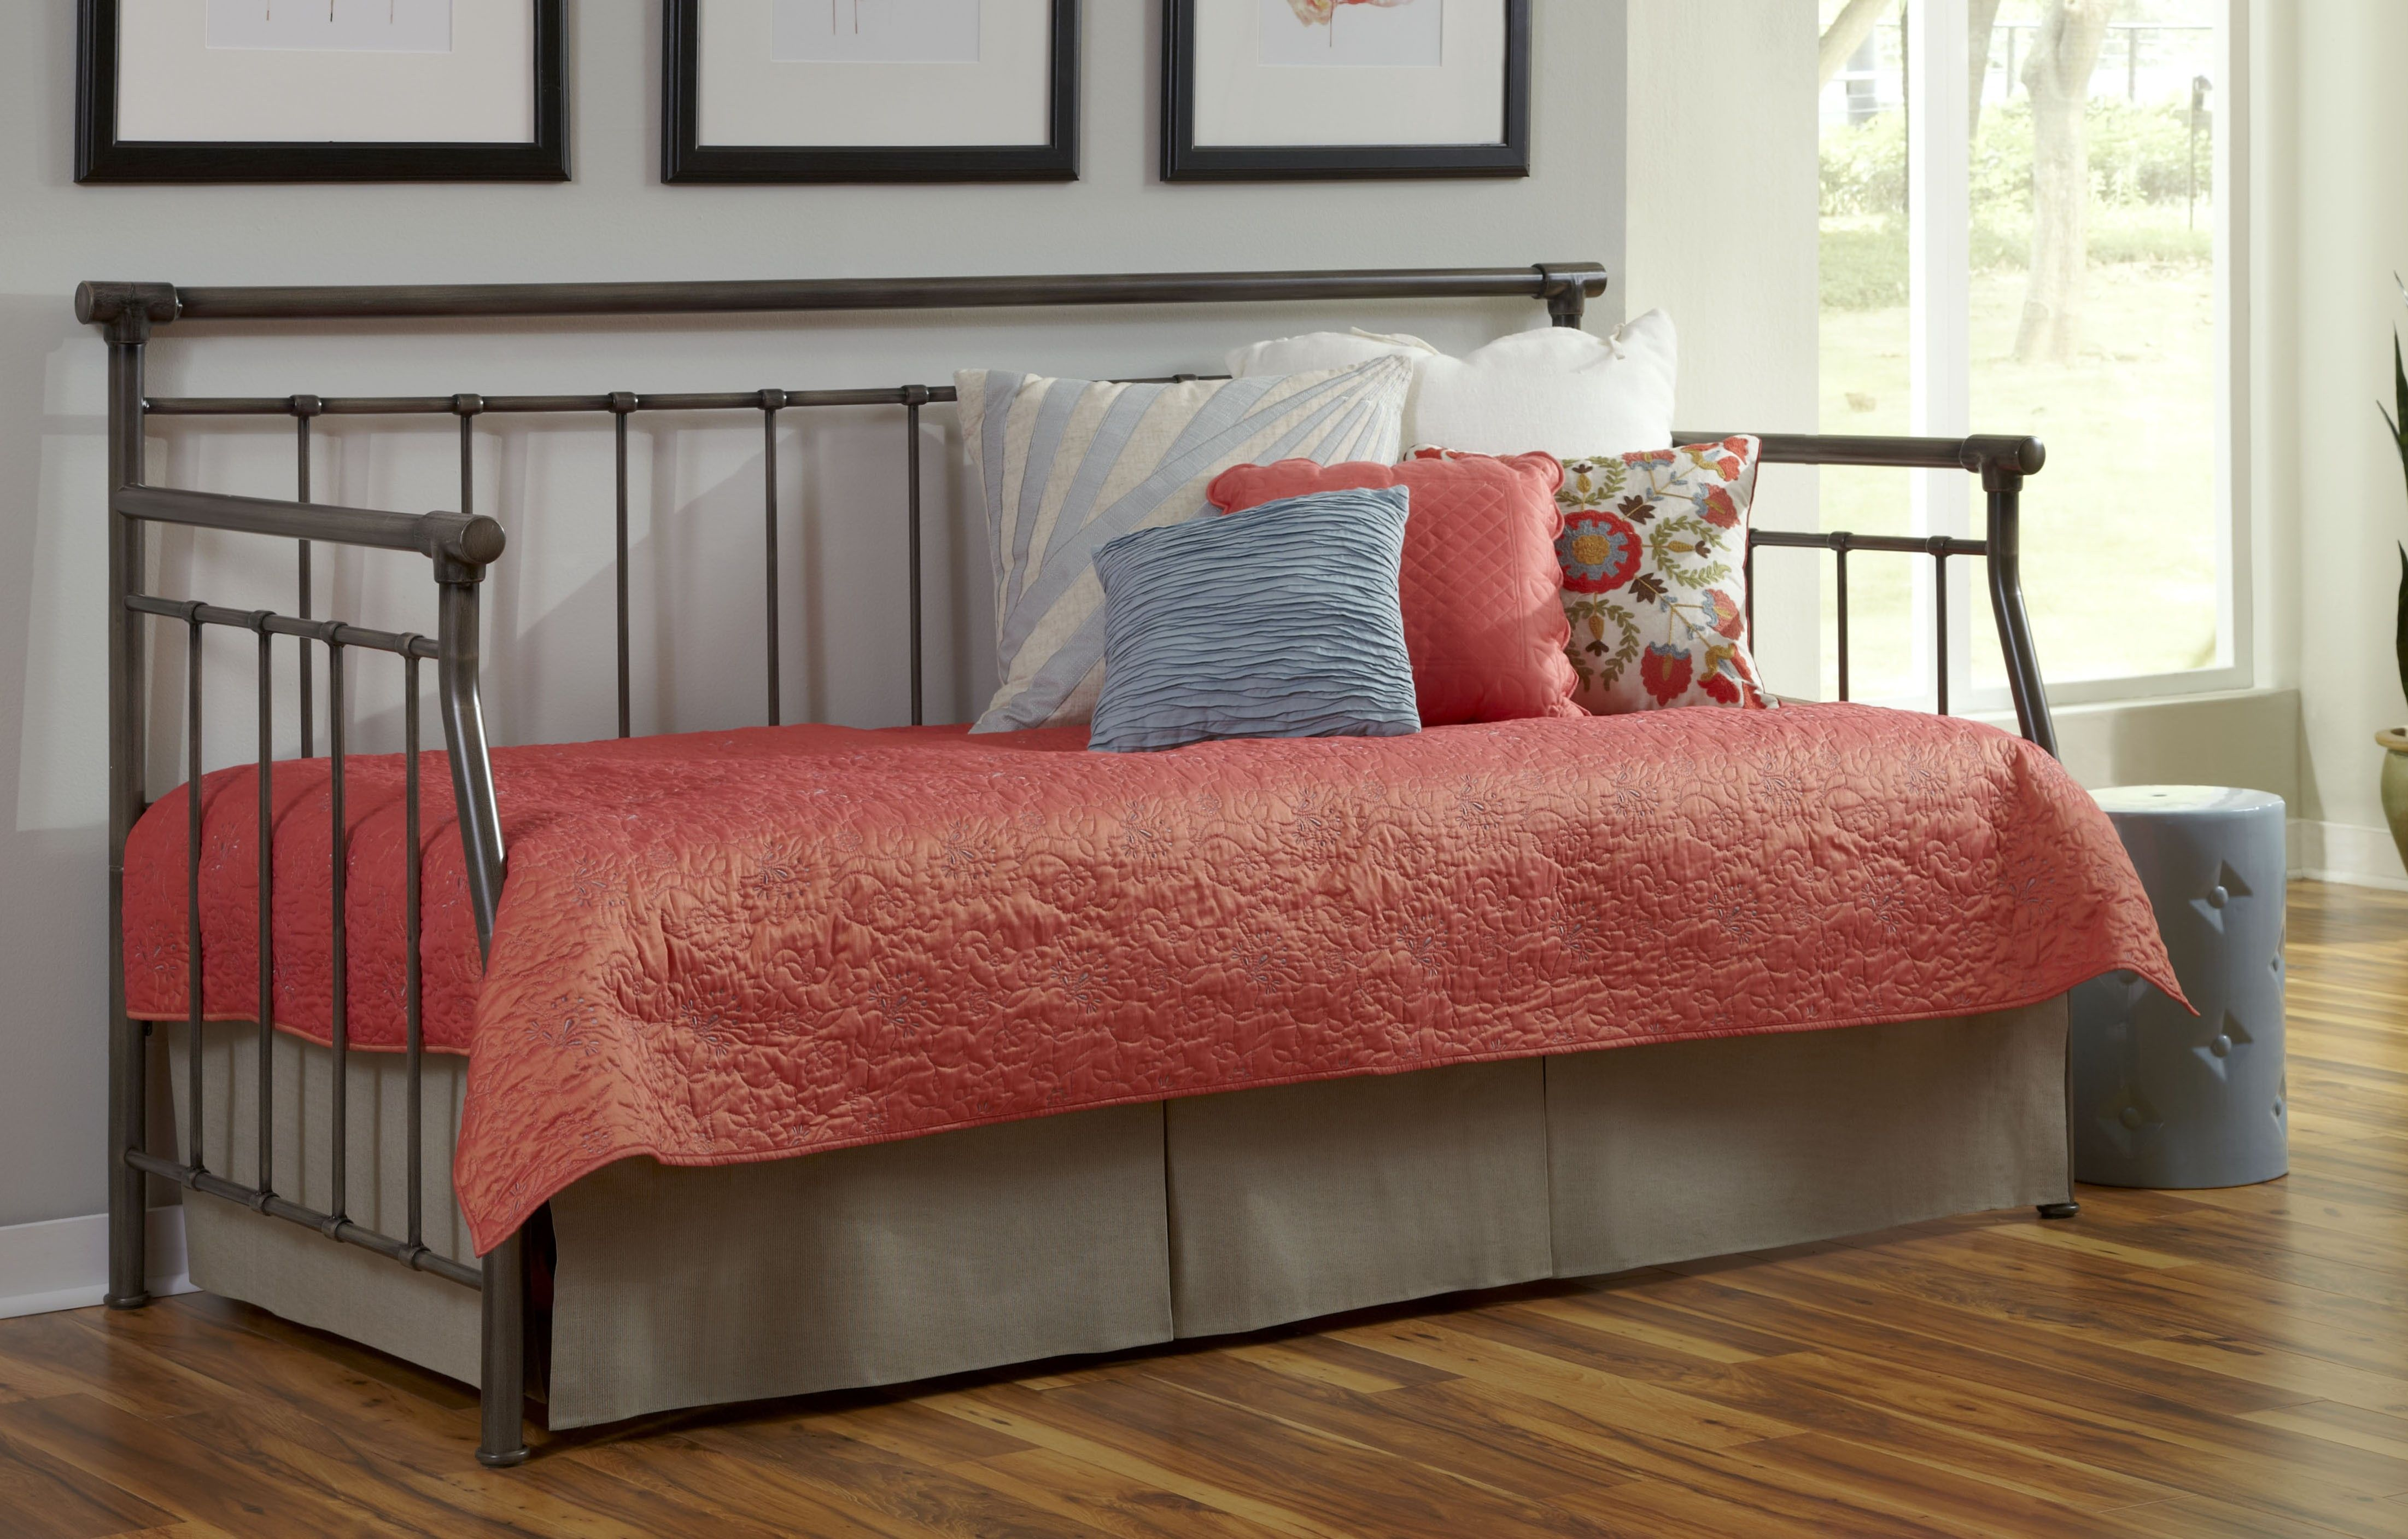 adorable style perfecto daybed covers with bolsters for bedding